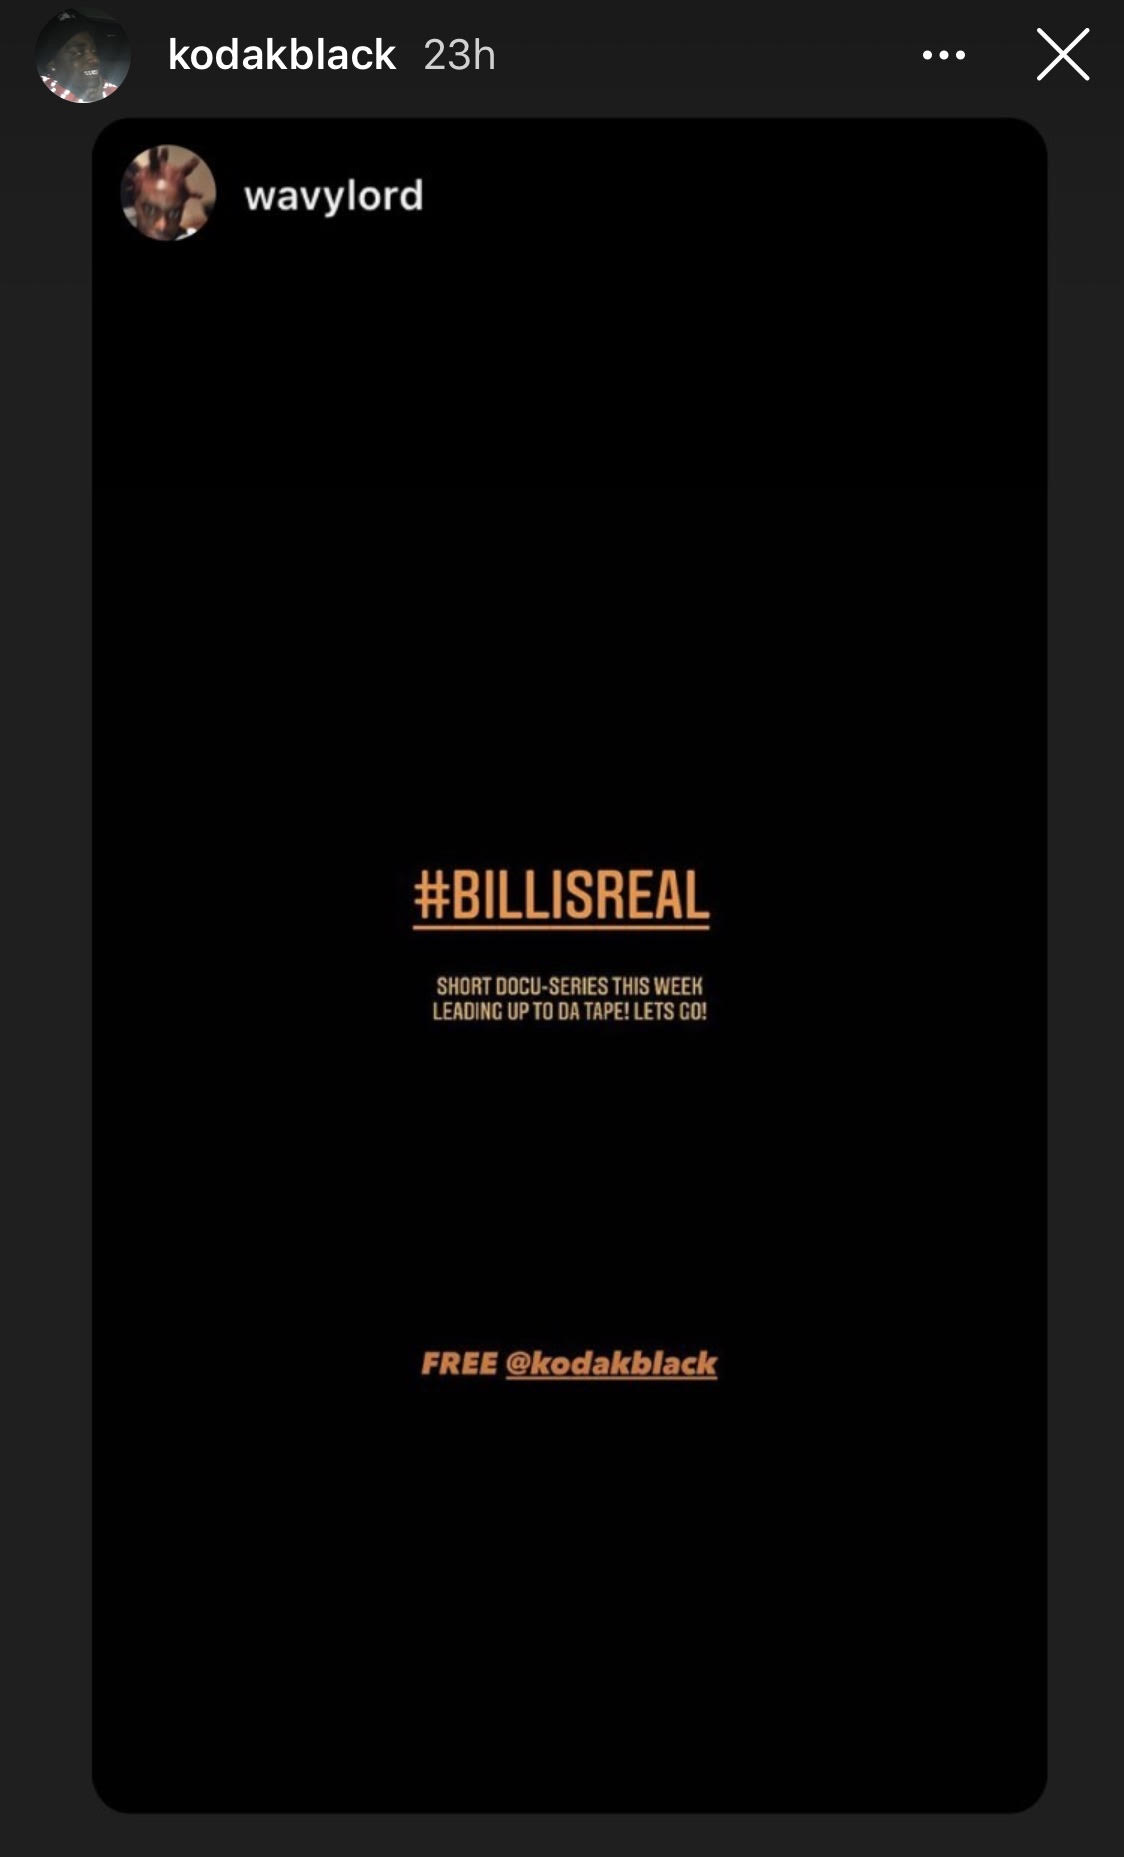 Kodak Black Reveals New Album Bill is Real